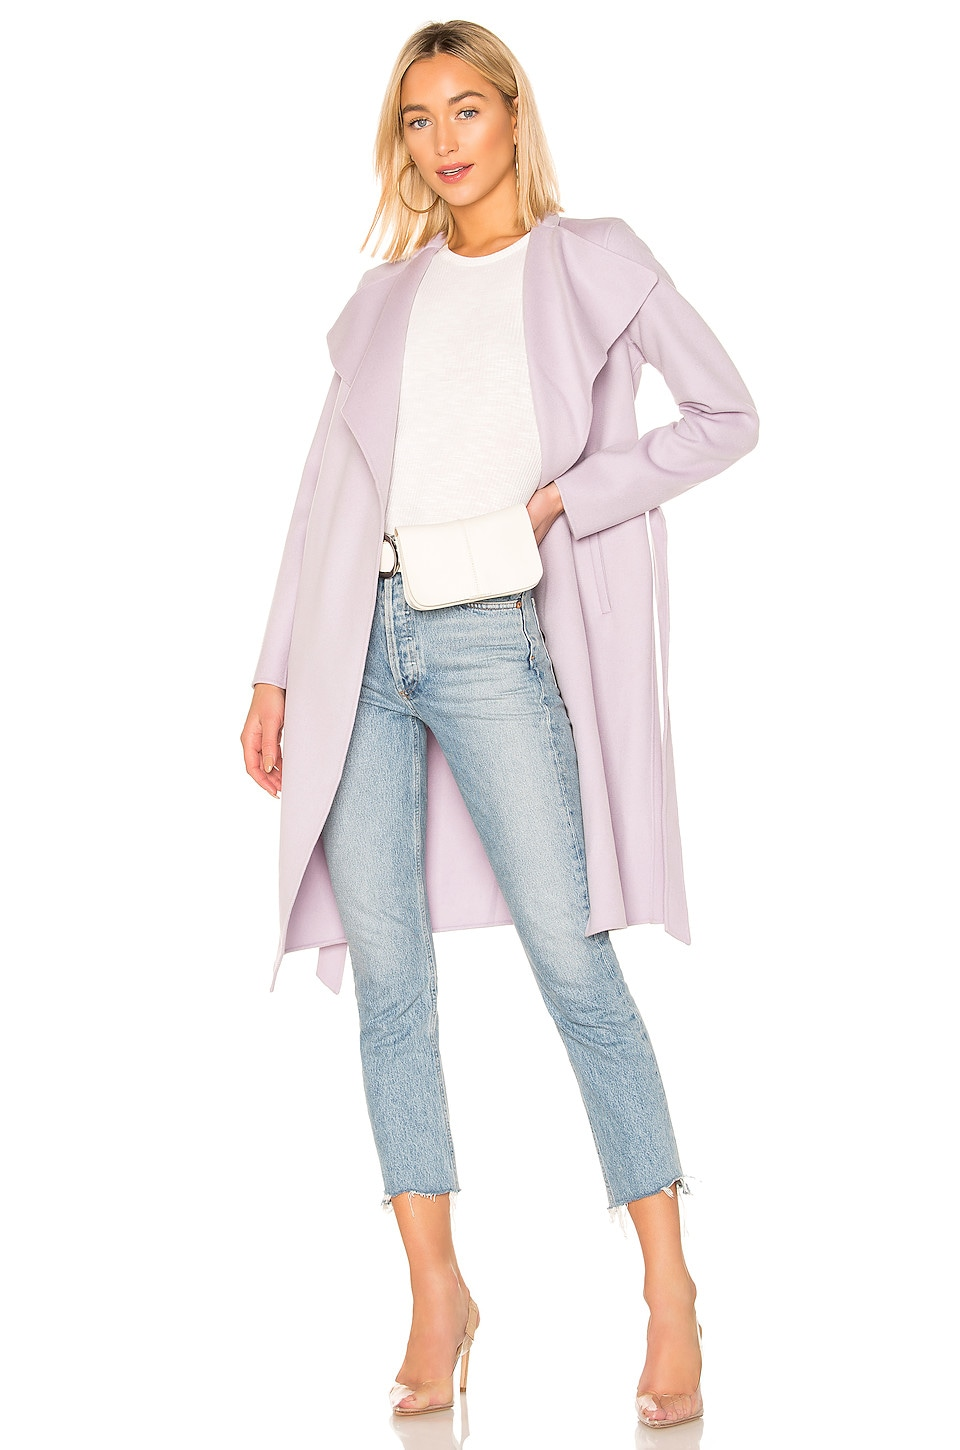 Mackage Leora Doubleface Wool Coat in Lilac